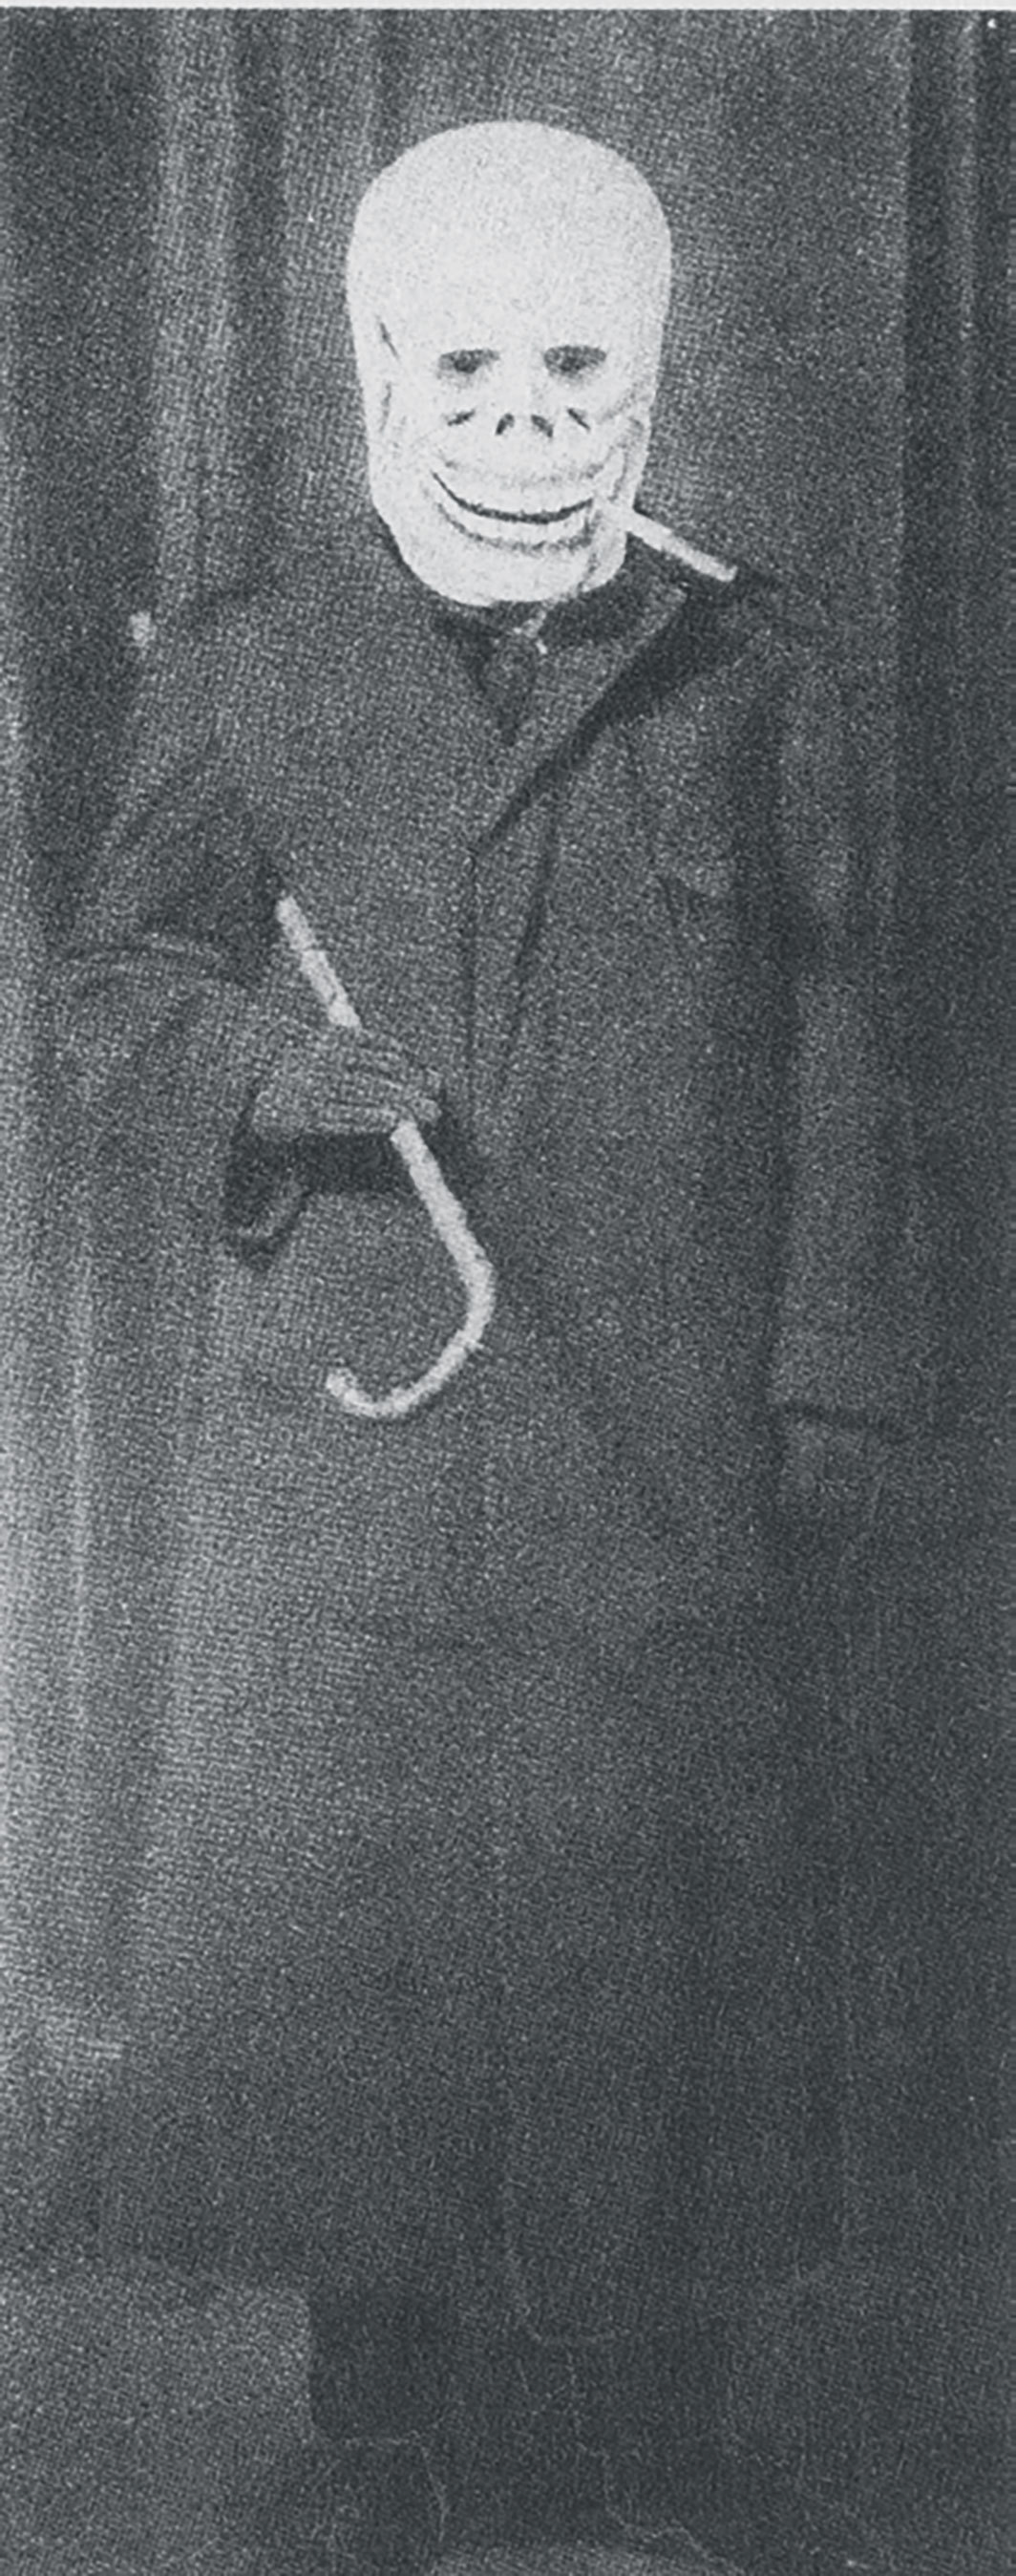 George Grosz in his Dada Death costume, Berlin, ca. 1918.